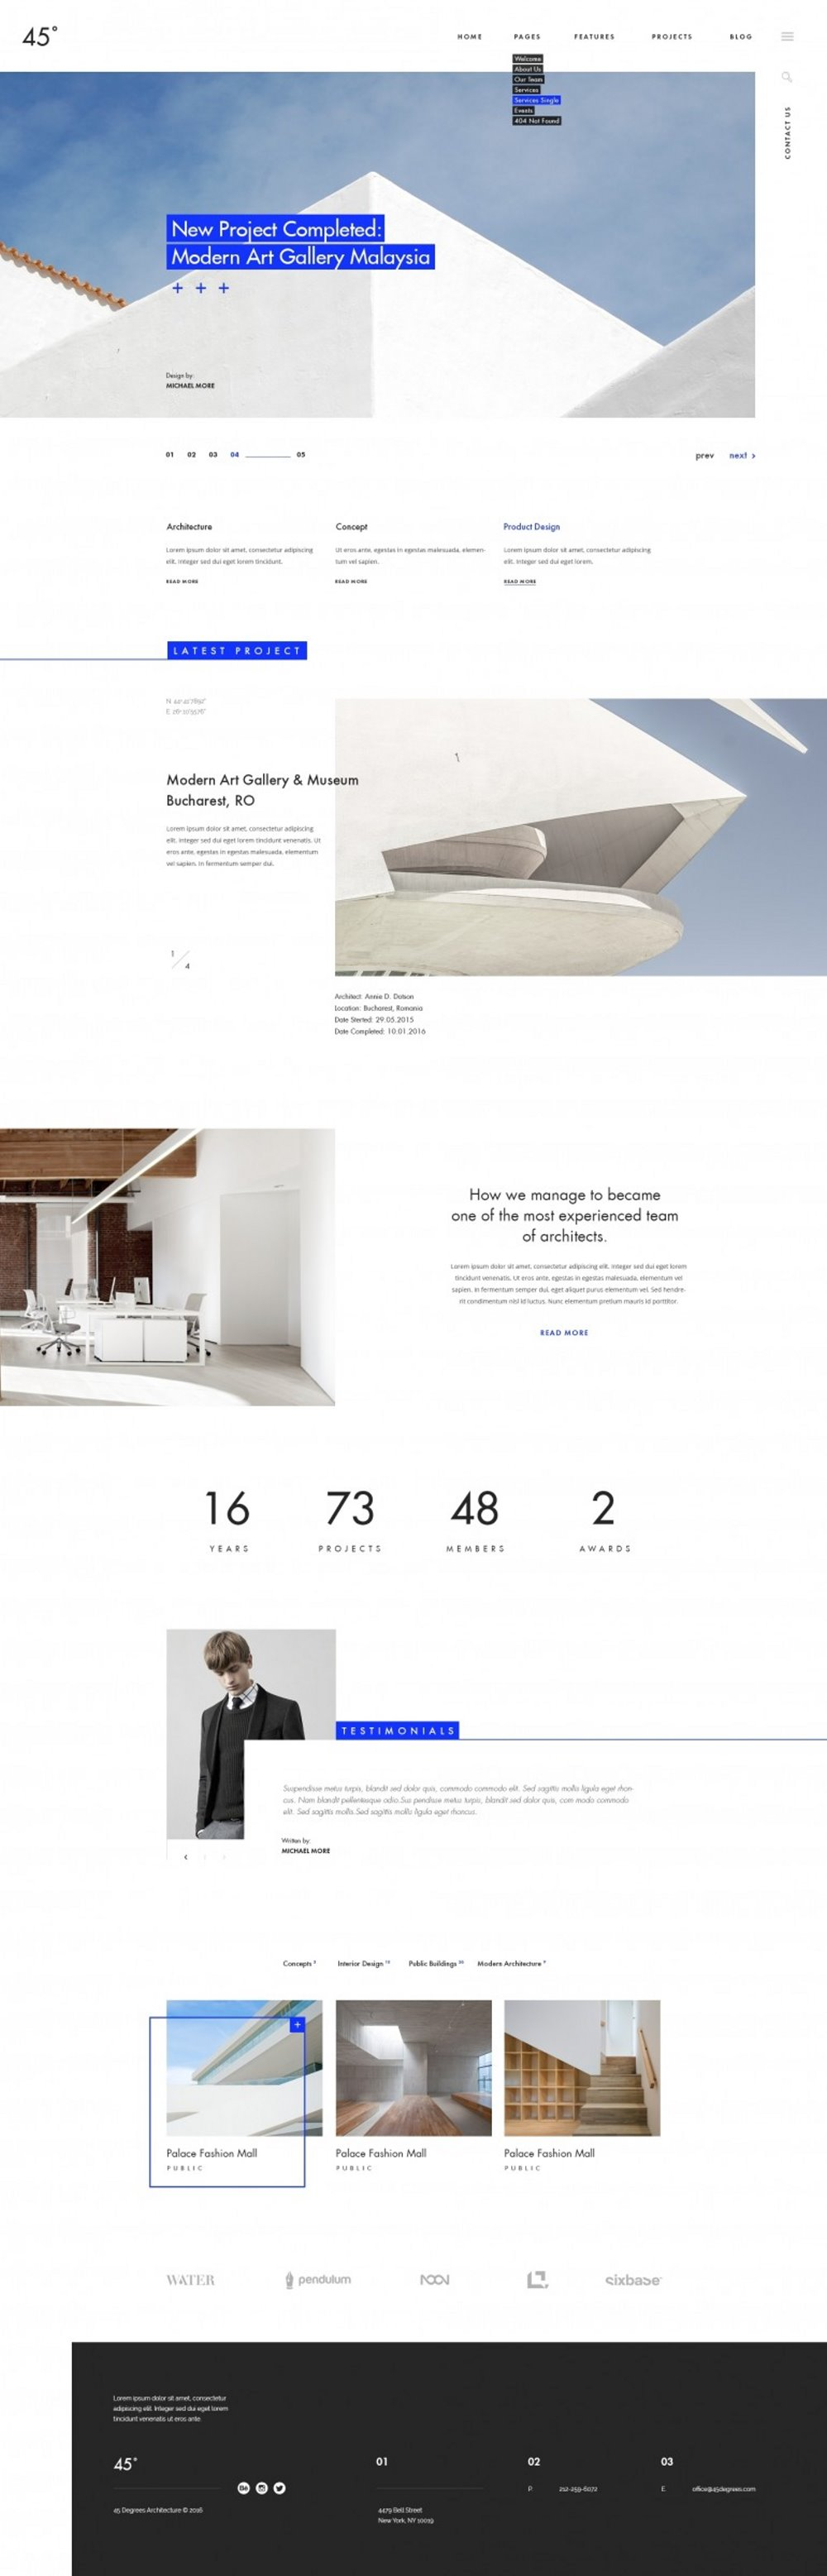 Best Architecture Website Designs for Inspiration 4